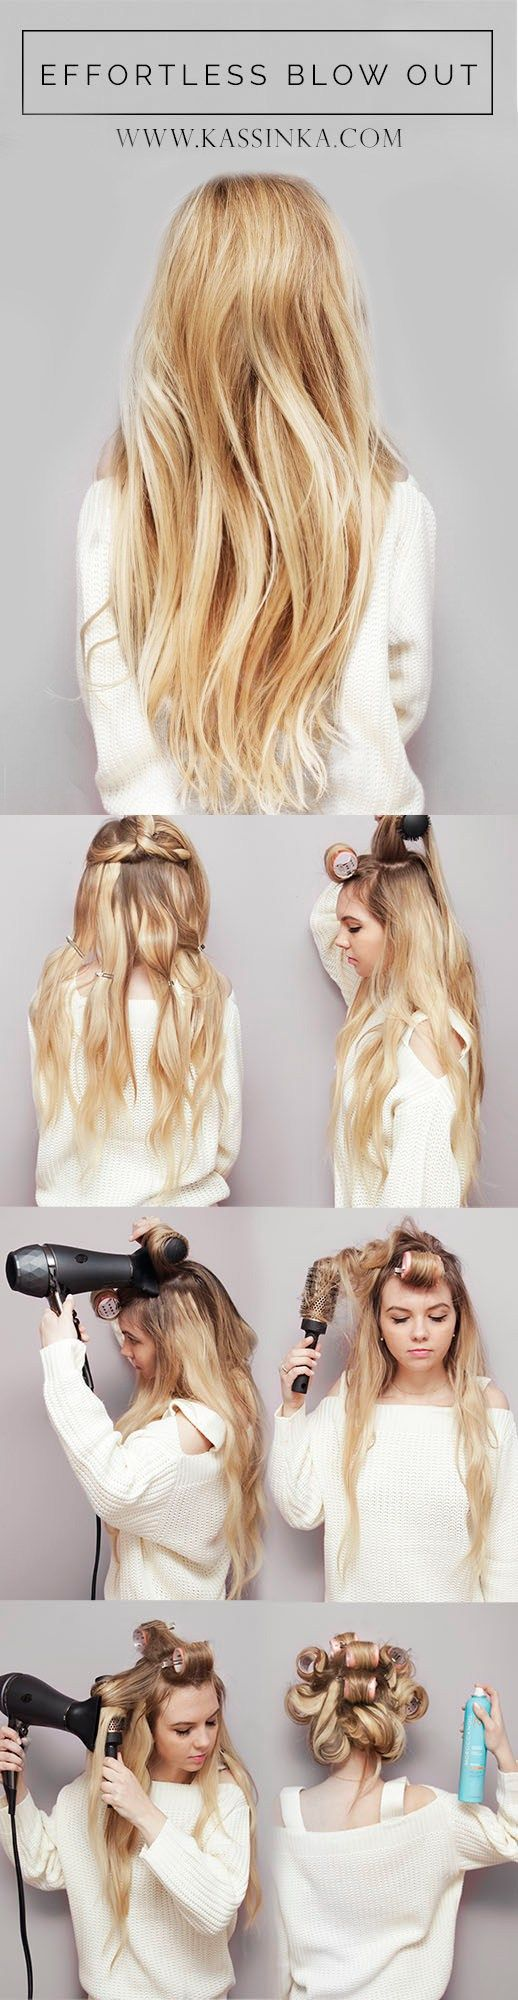 The secret to expensive looking hair is all in a good blow out!   I  am back with another gorgeous DIY styling option to help you always feel your best & look amazing. Read the steps below and …